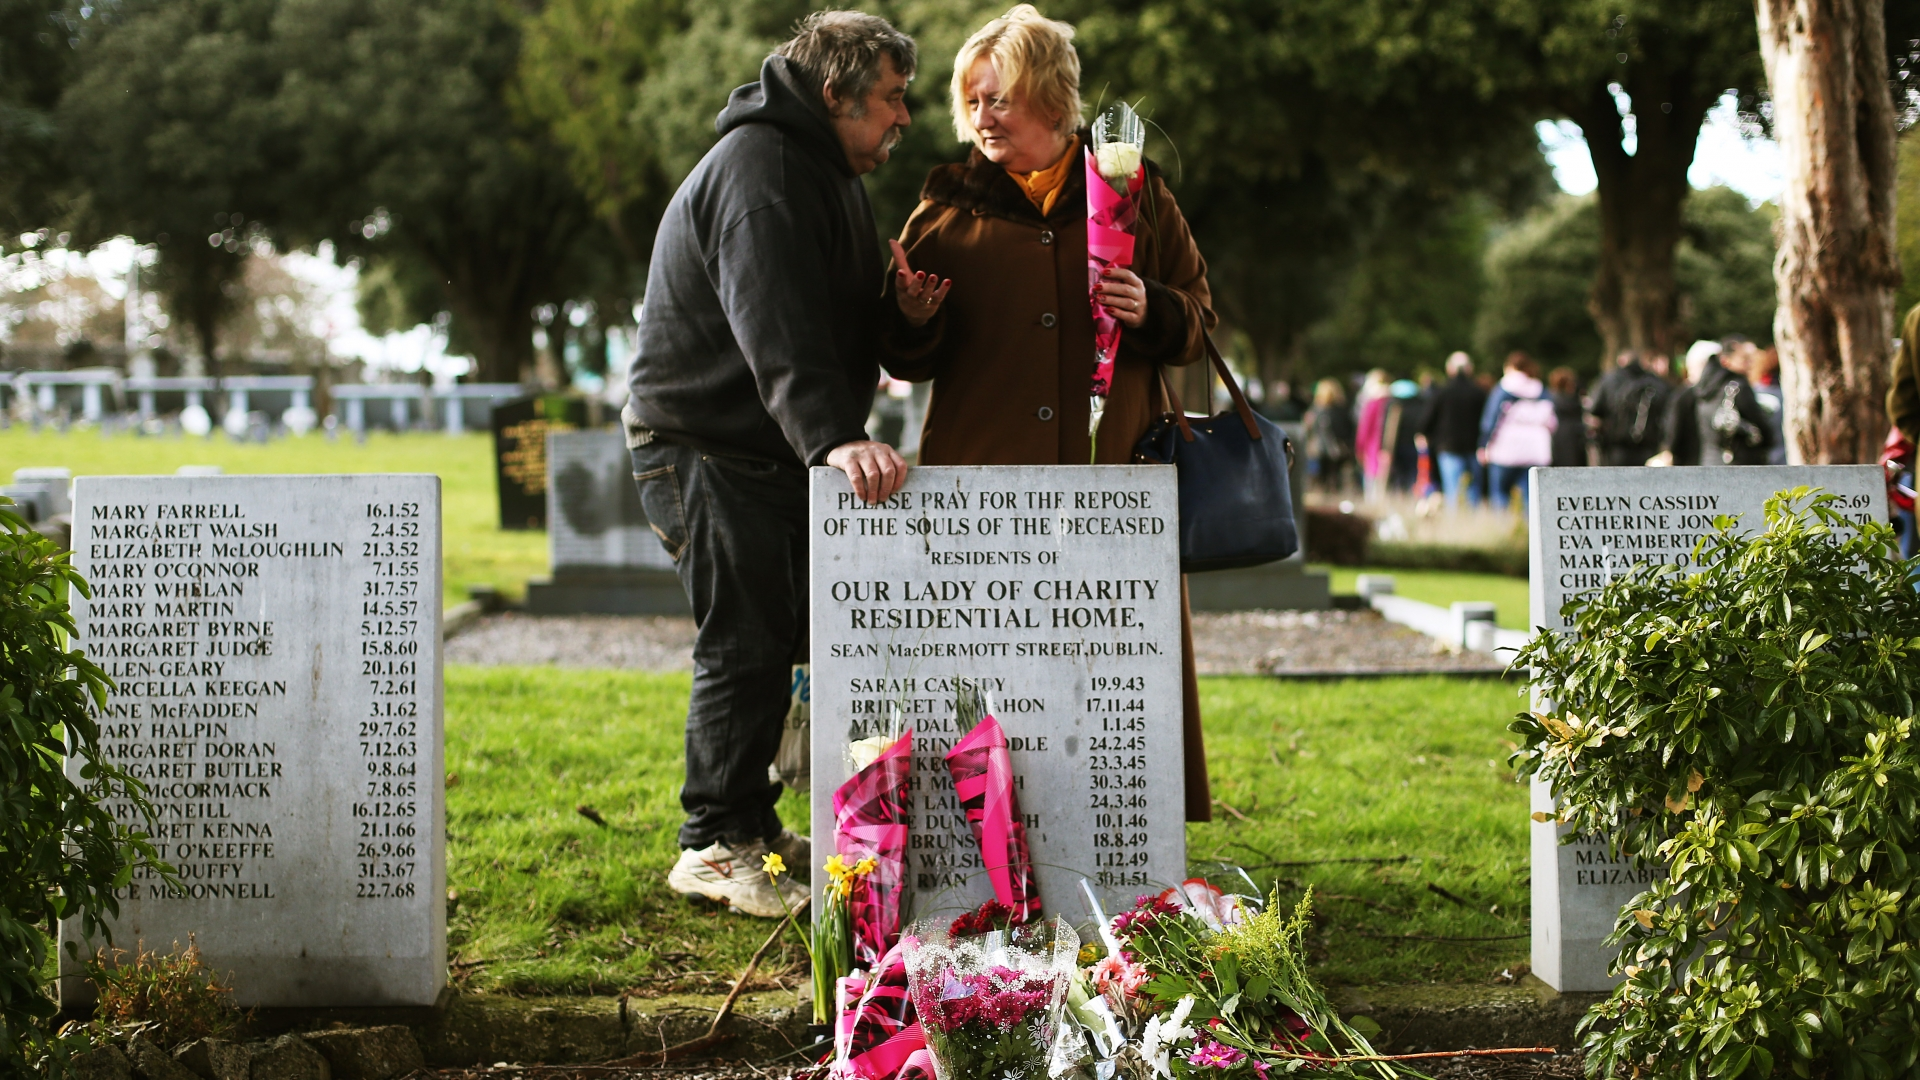 Kevin Flanagan with Marie Barry, who was born at a Bessboro Mother and Baby home, at the 2014 third annual Flowers for Magdalenes remembrance event in Glasnevin cemetery, Dublin, to mark all of the women incarcerated in the Magdalene laundries. (Credit: Brian Lawless/PA Images/Getty Images)